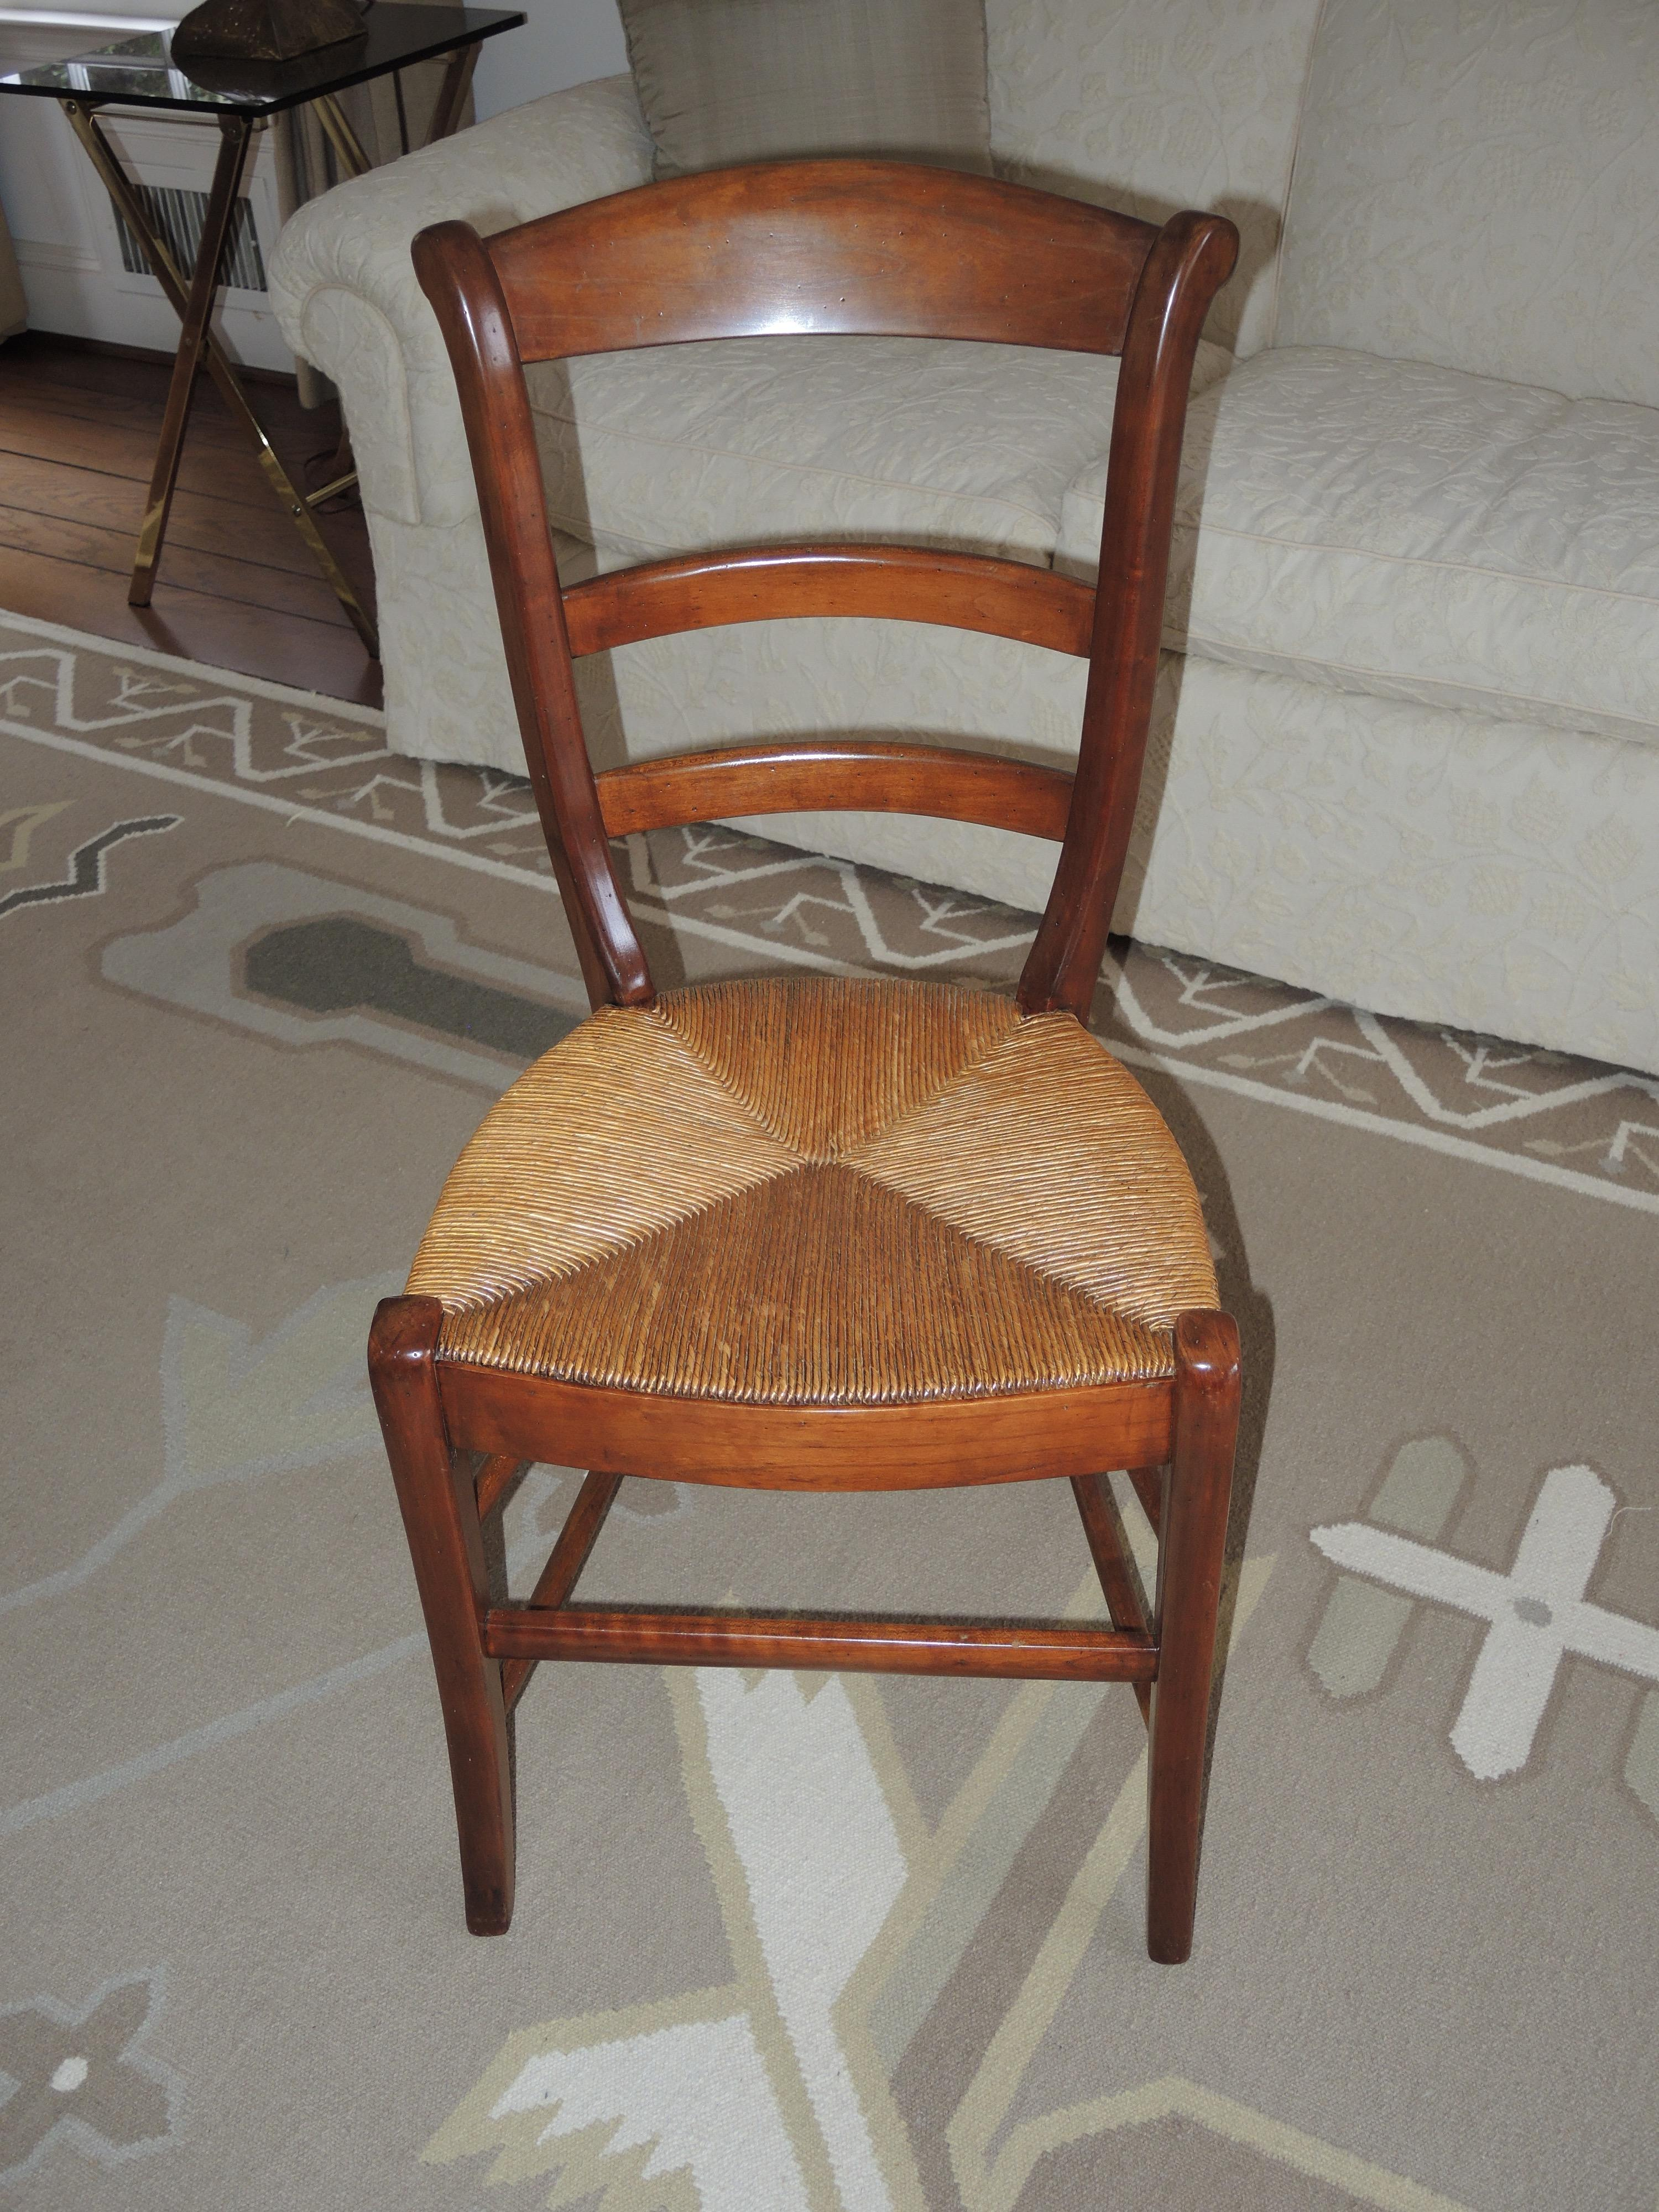 Early American Dining Room Furniture: Early American Dining Chairs - Set Of 6